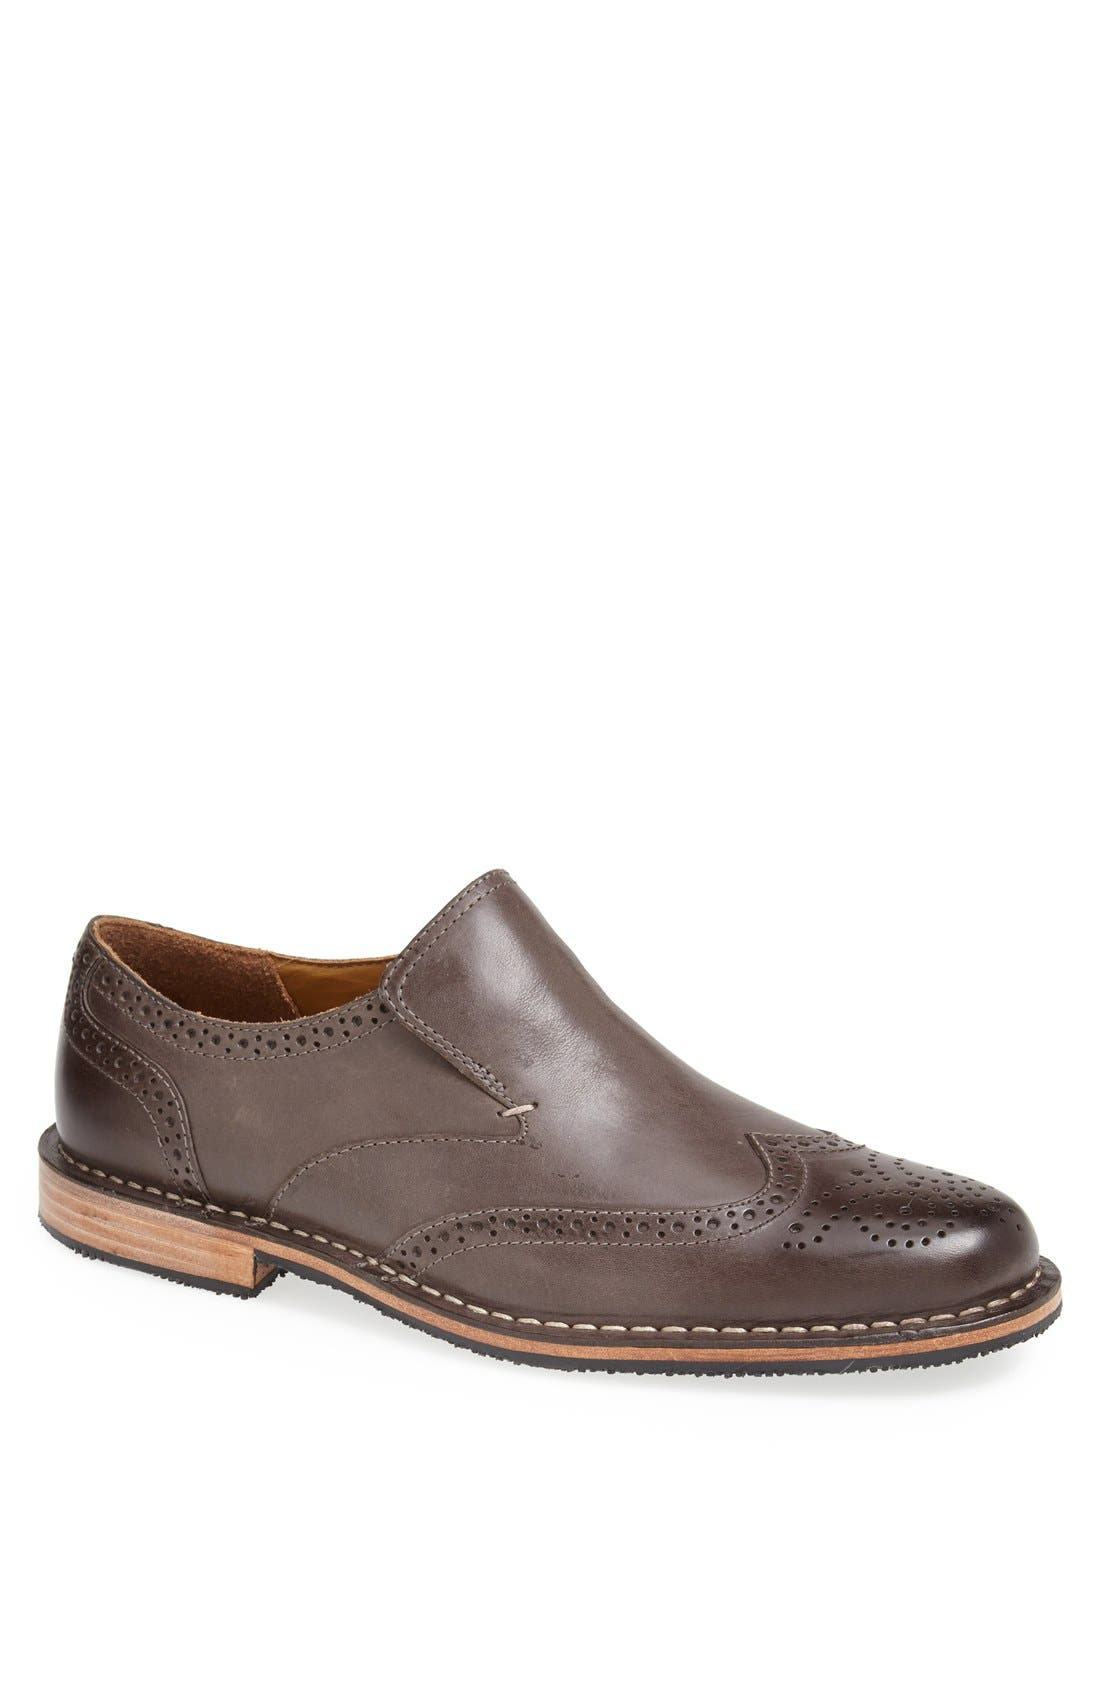 Main Image - Sebago 'Brattle' Venetian Loafer